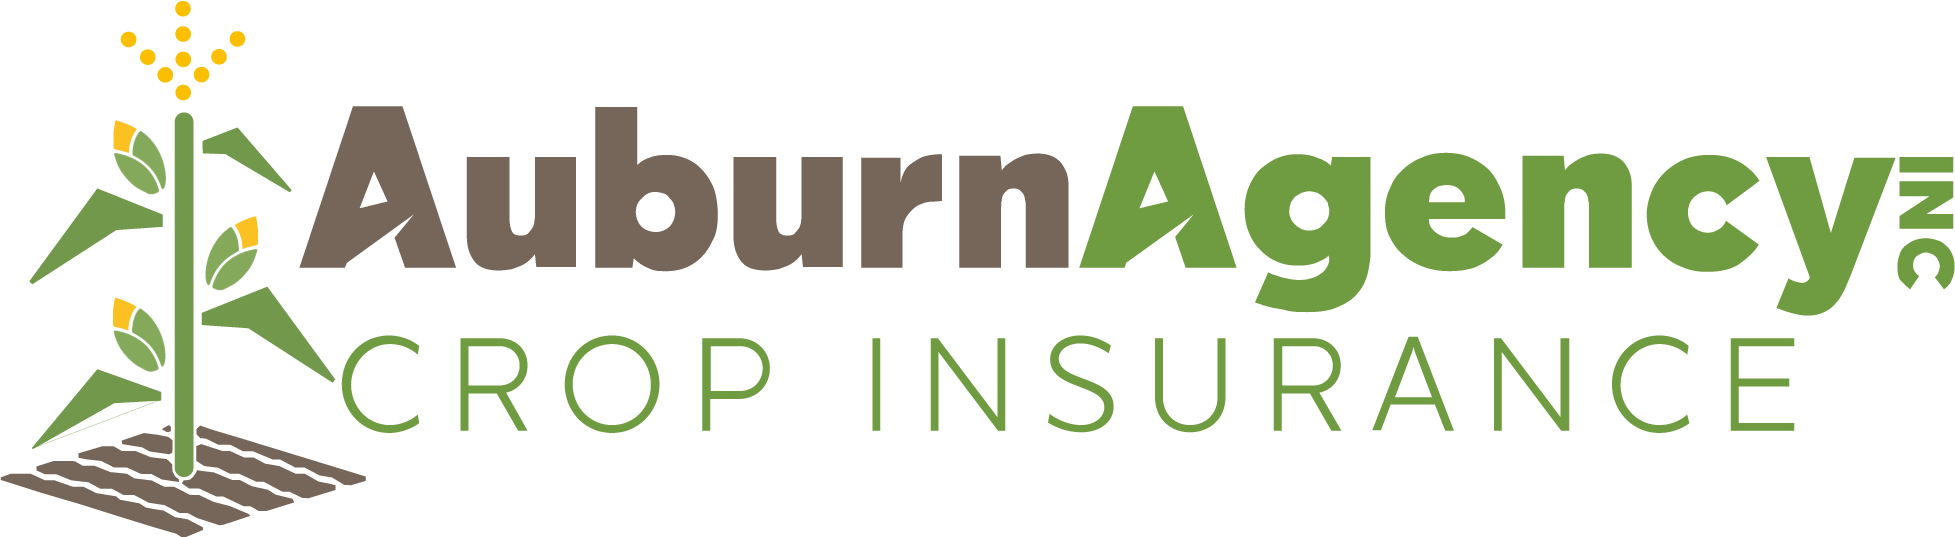 Auburn Agency Crop Insurance